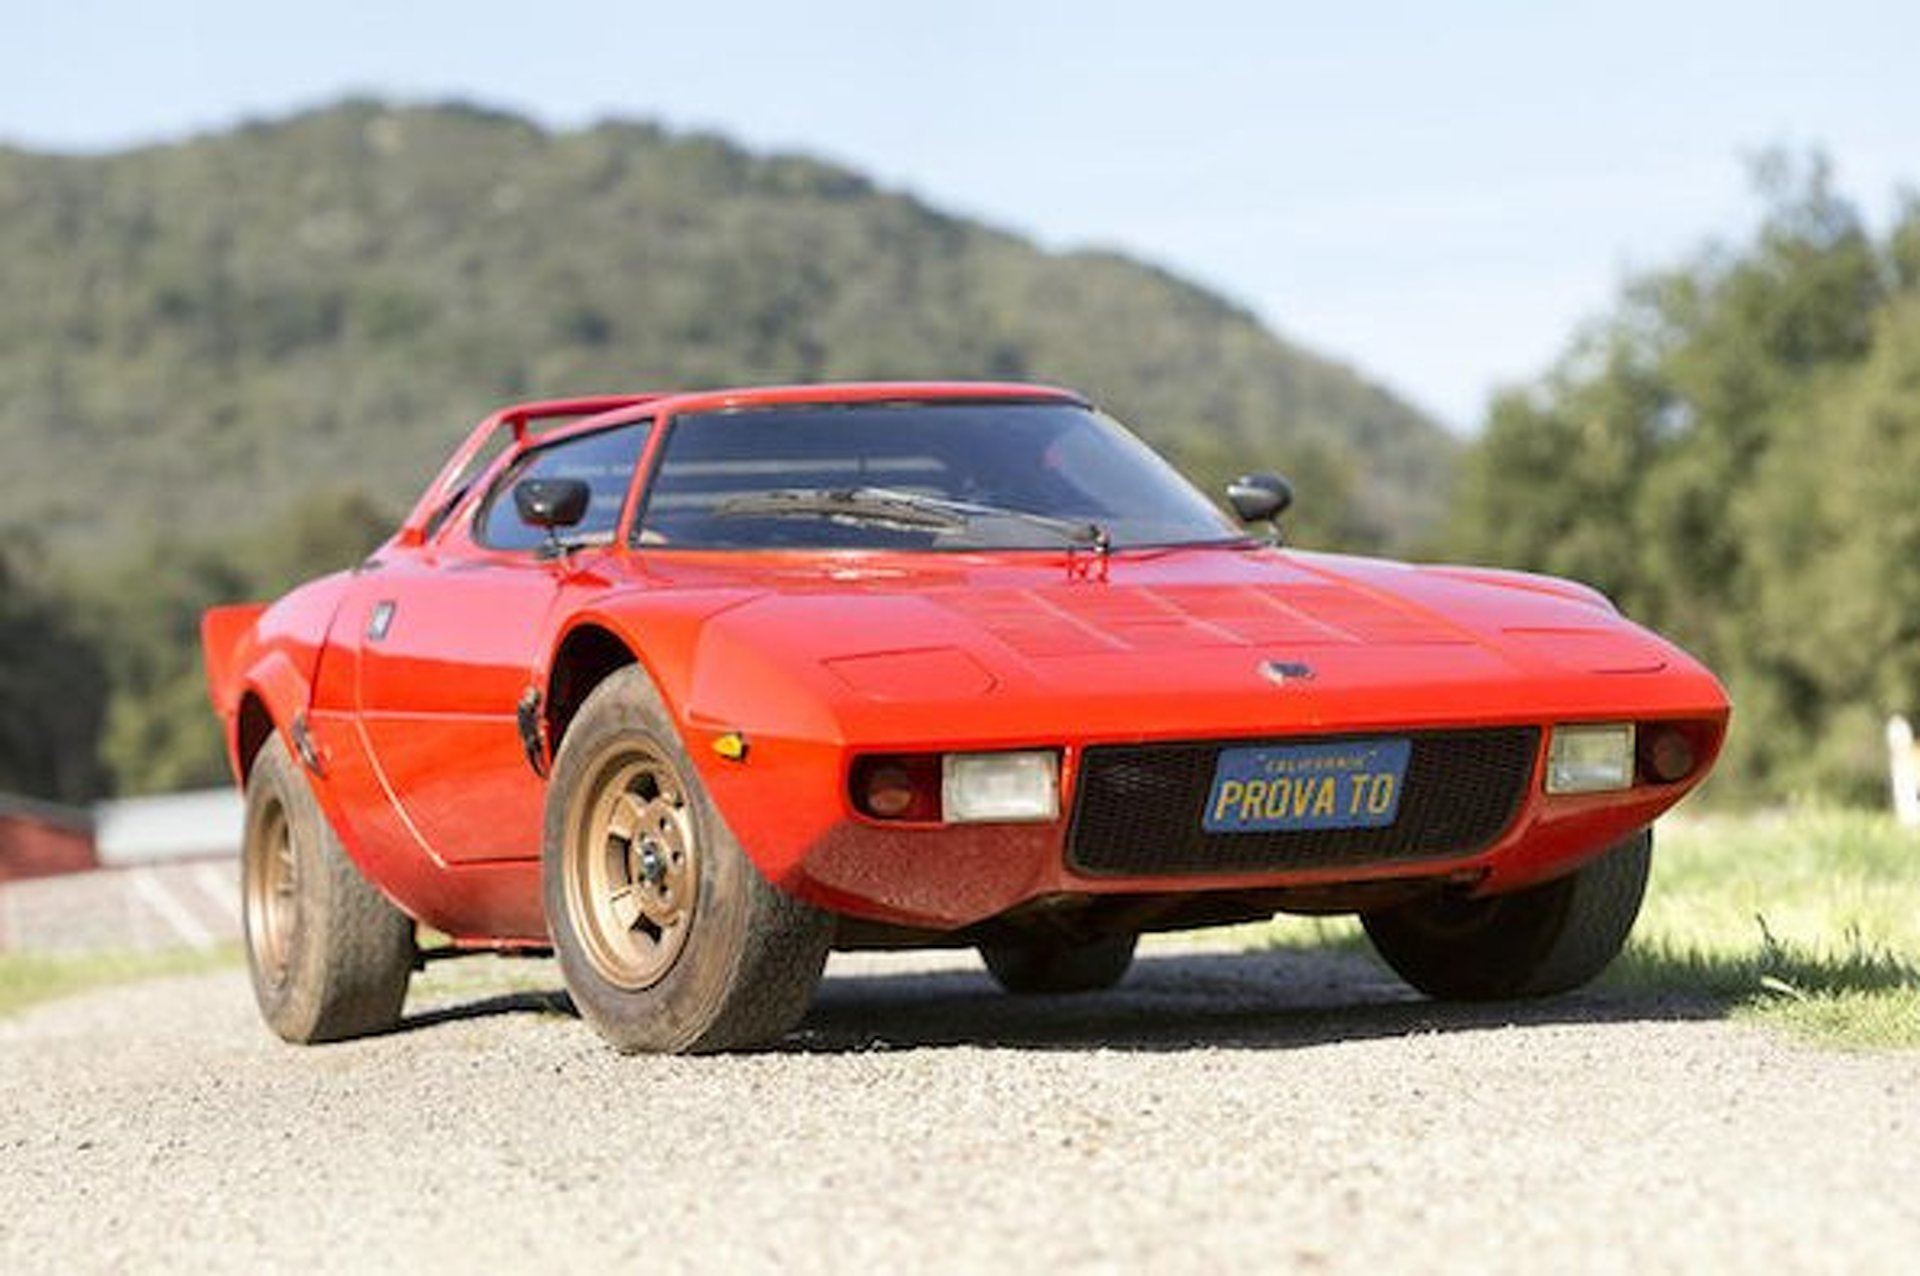 Popular This Week Shelby Barn Find and the Cars of Breaking Bad